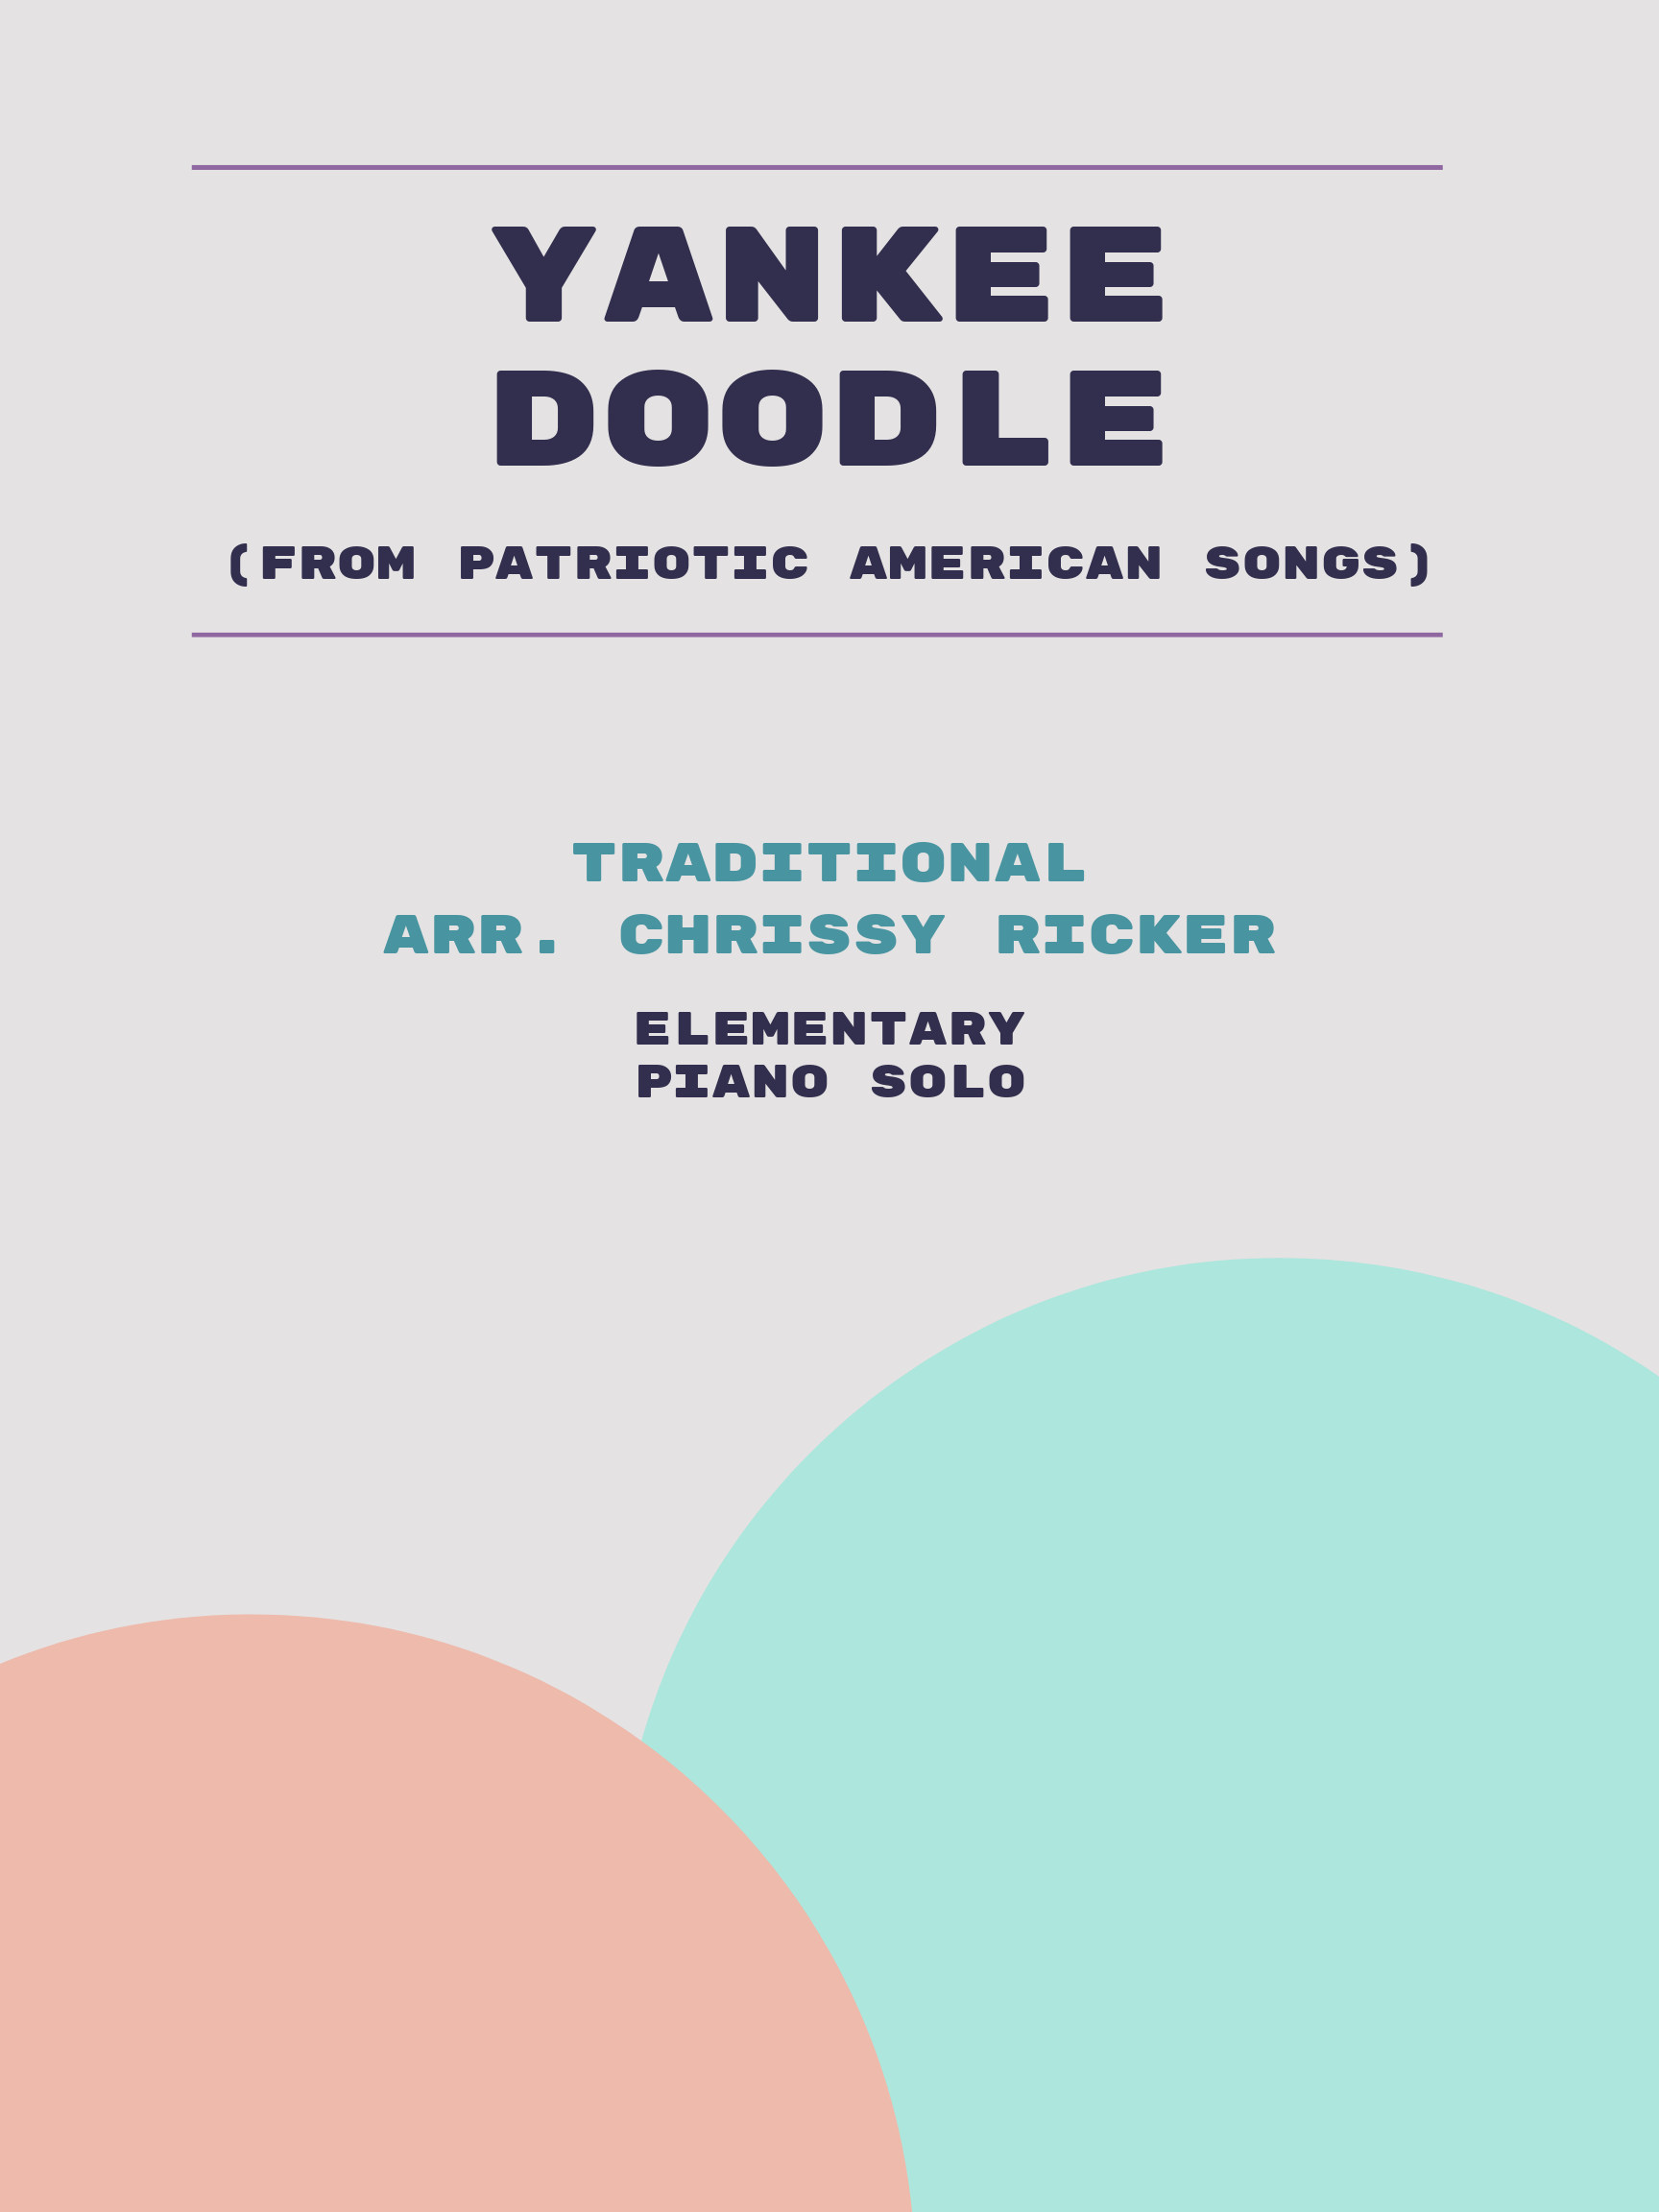 Yankee Doodle by Traditional